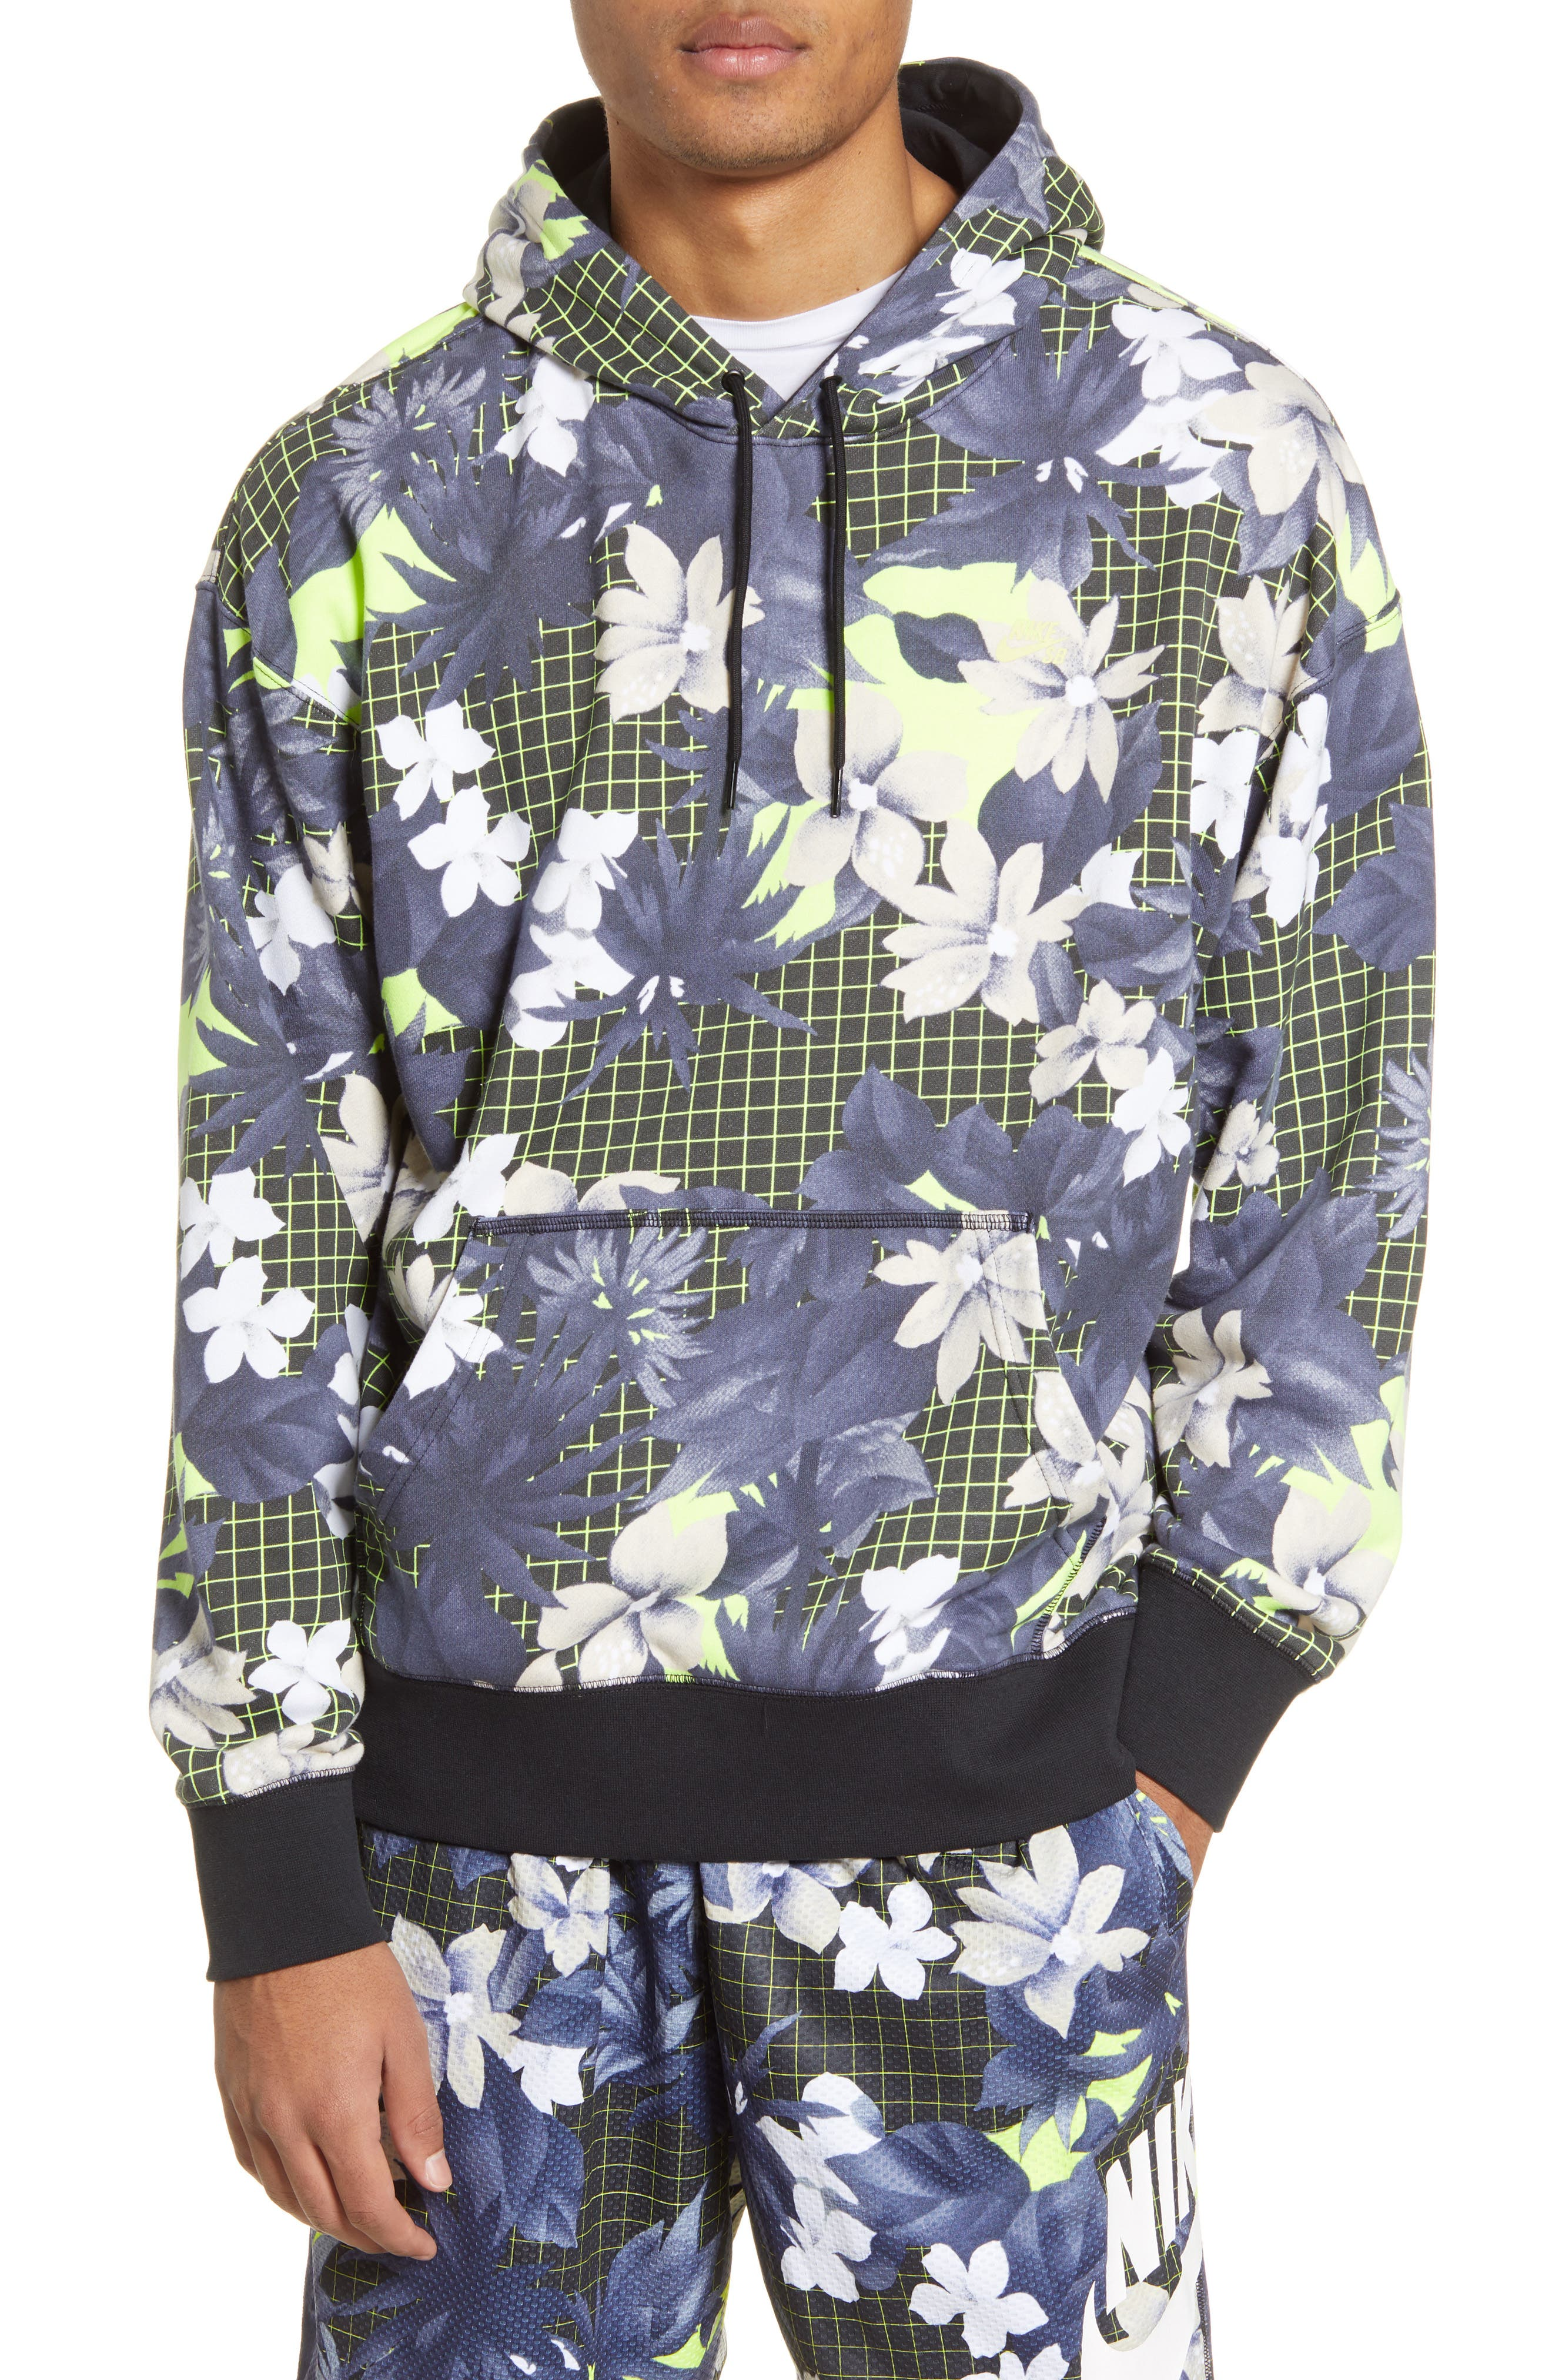 Bold flowers overlay a geometric grid on a relaxed, layer-ready hoodie that instantly upgrades your look. Style Name: Nike Sb Paradise Floral Print Hoodie. Style Number: 5957326. Available in stores.